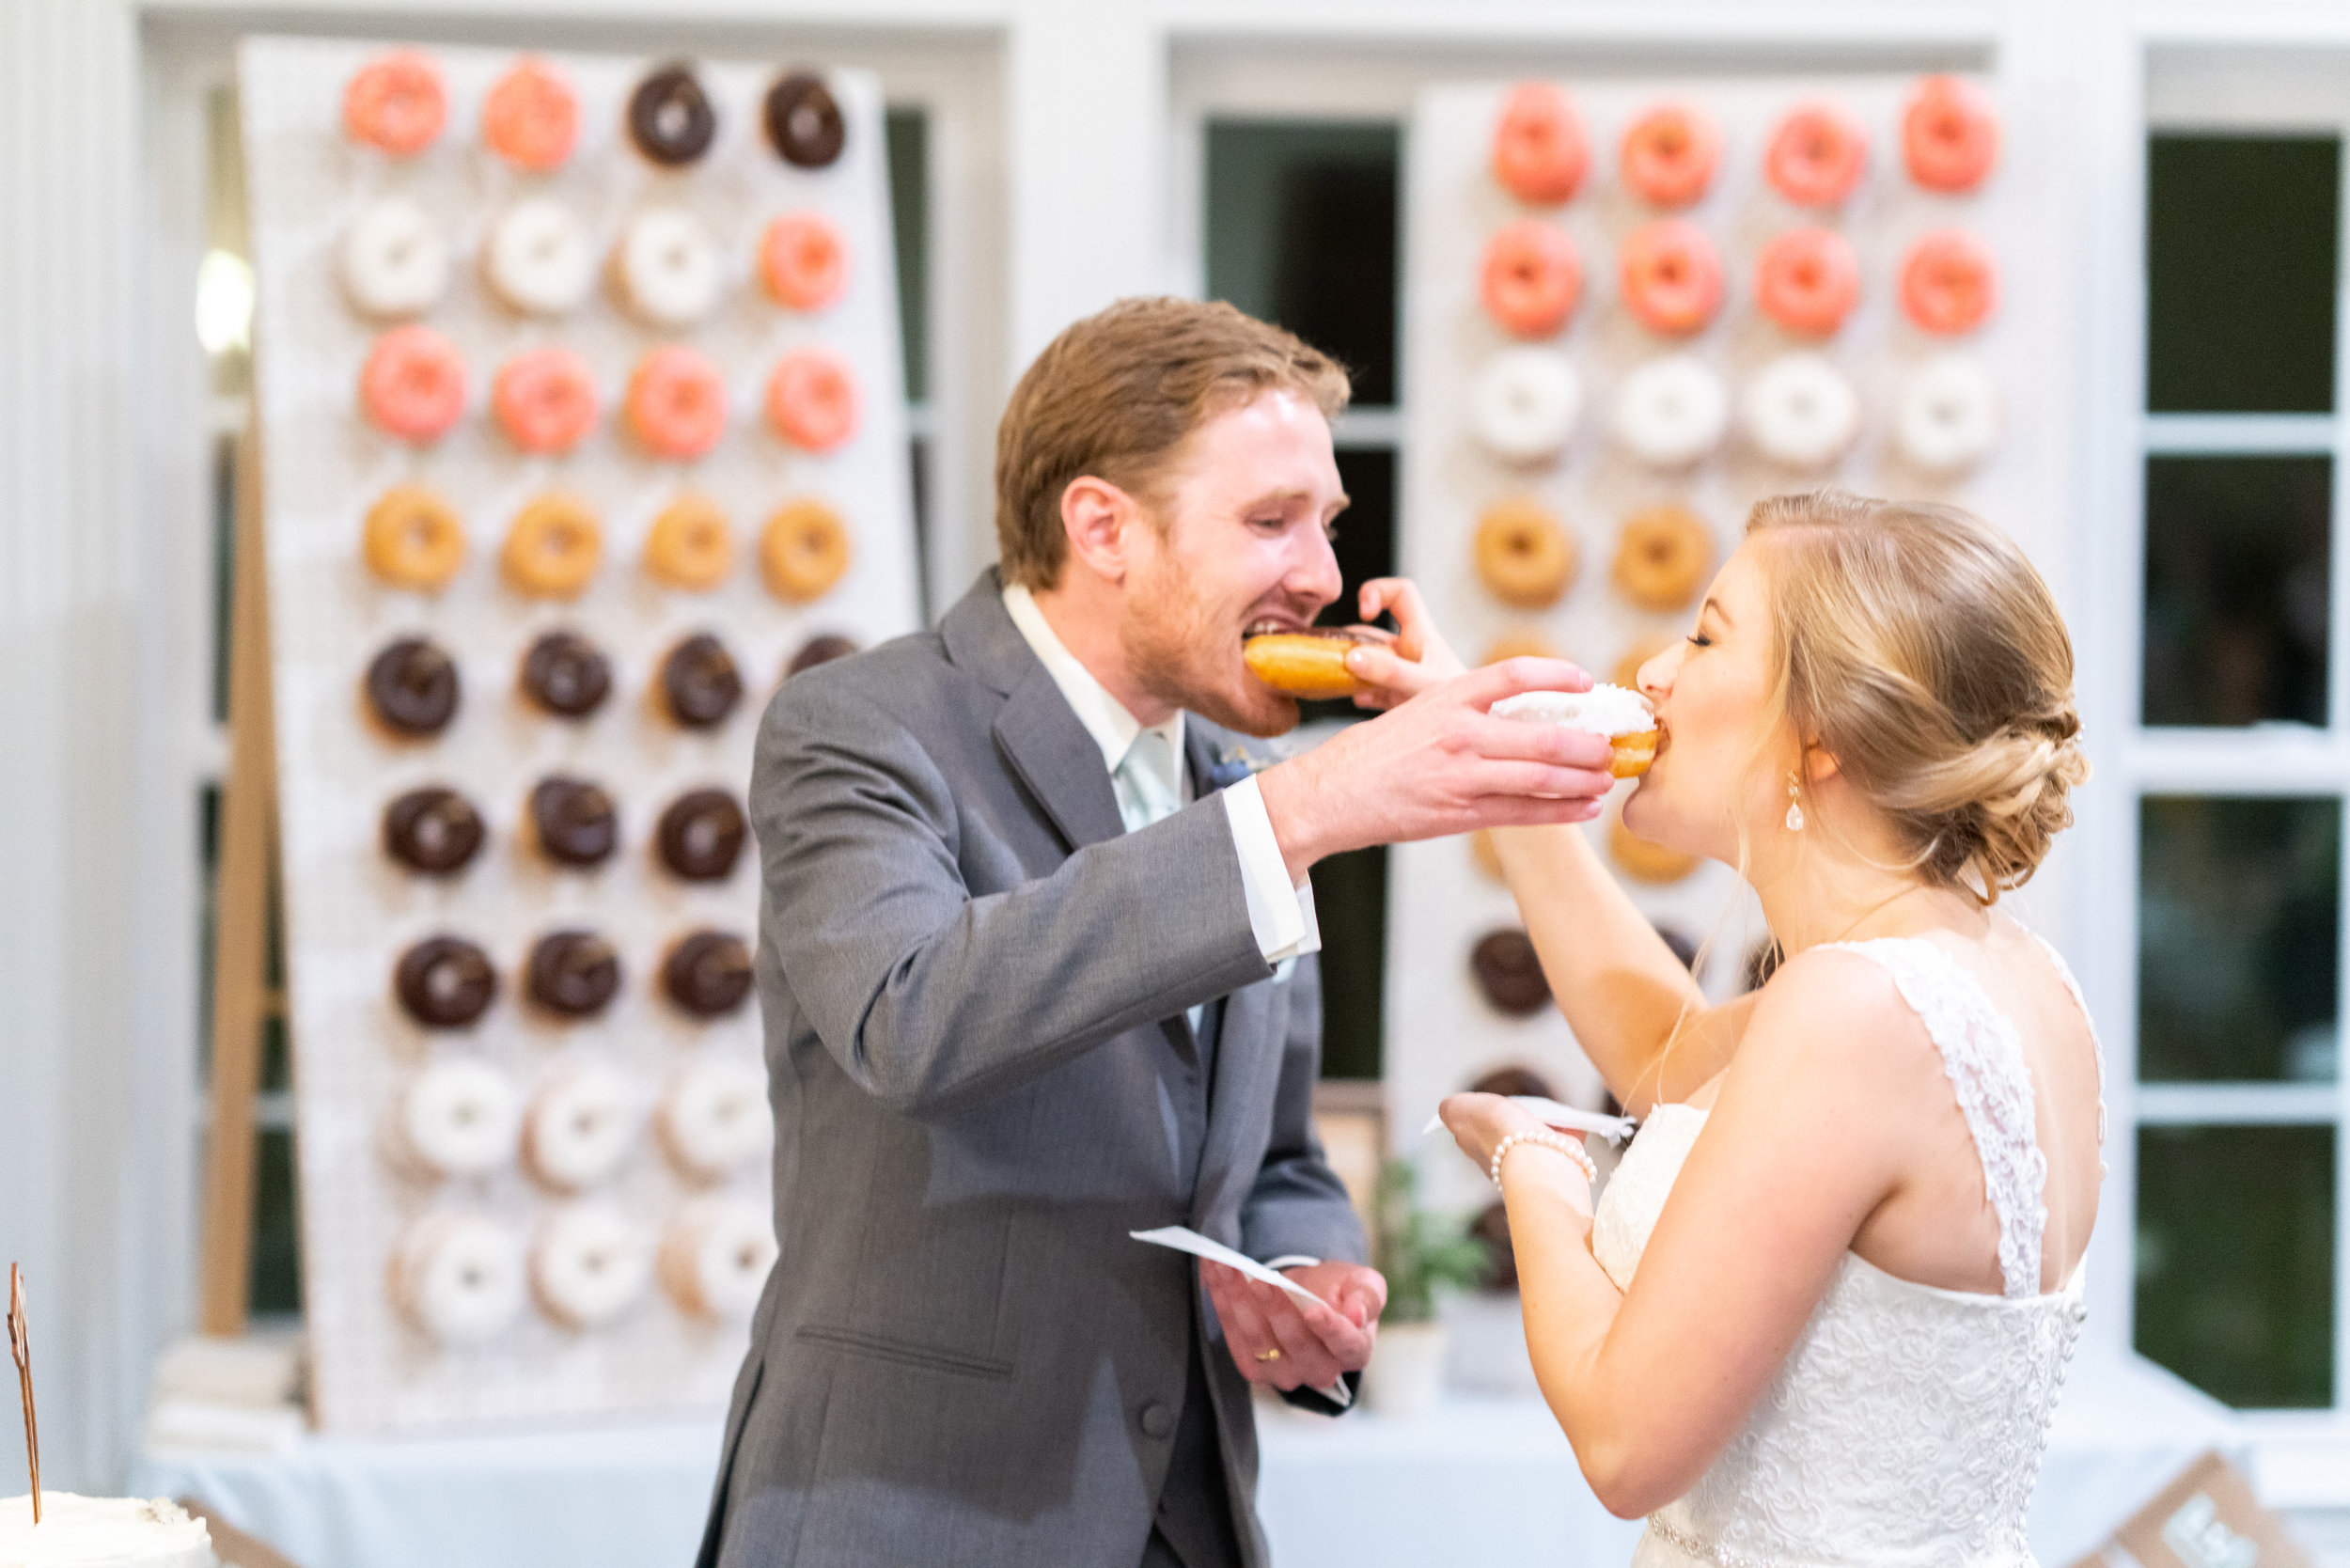 Bride and groom sharing donuts during cake cutting at stone manor country club